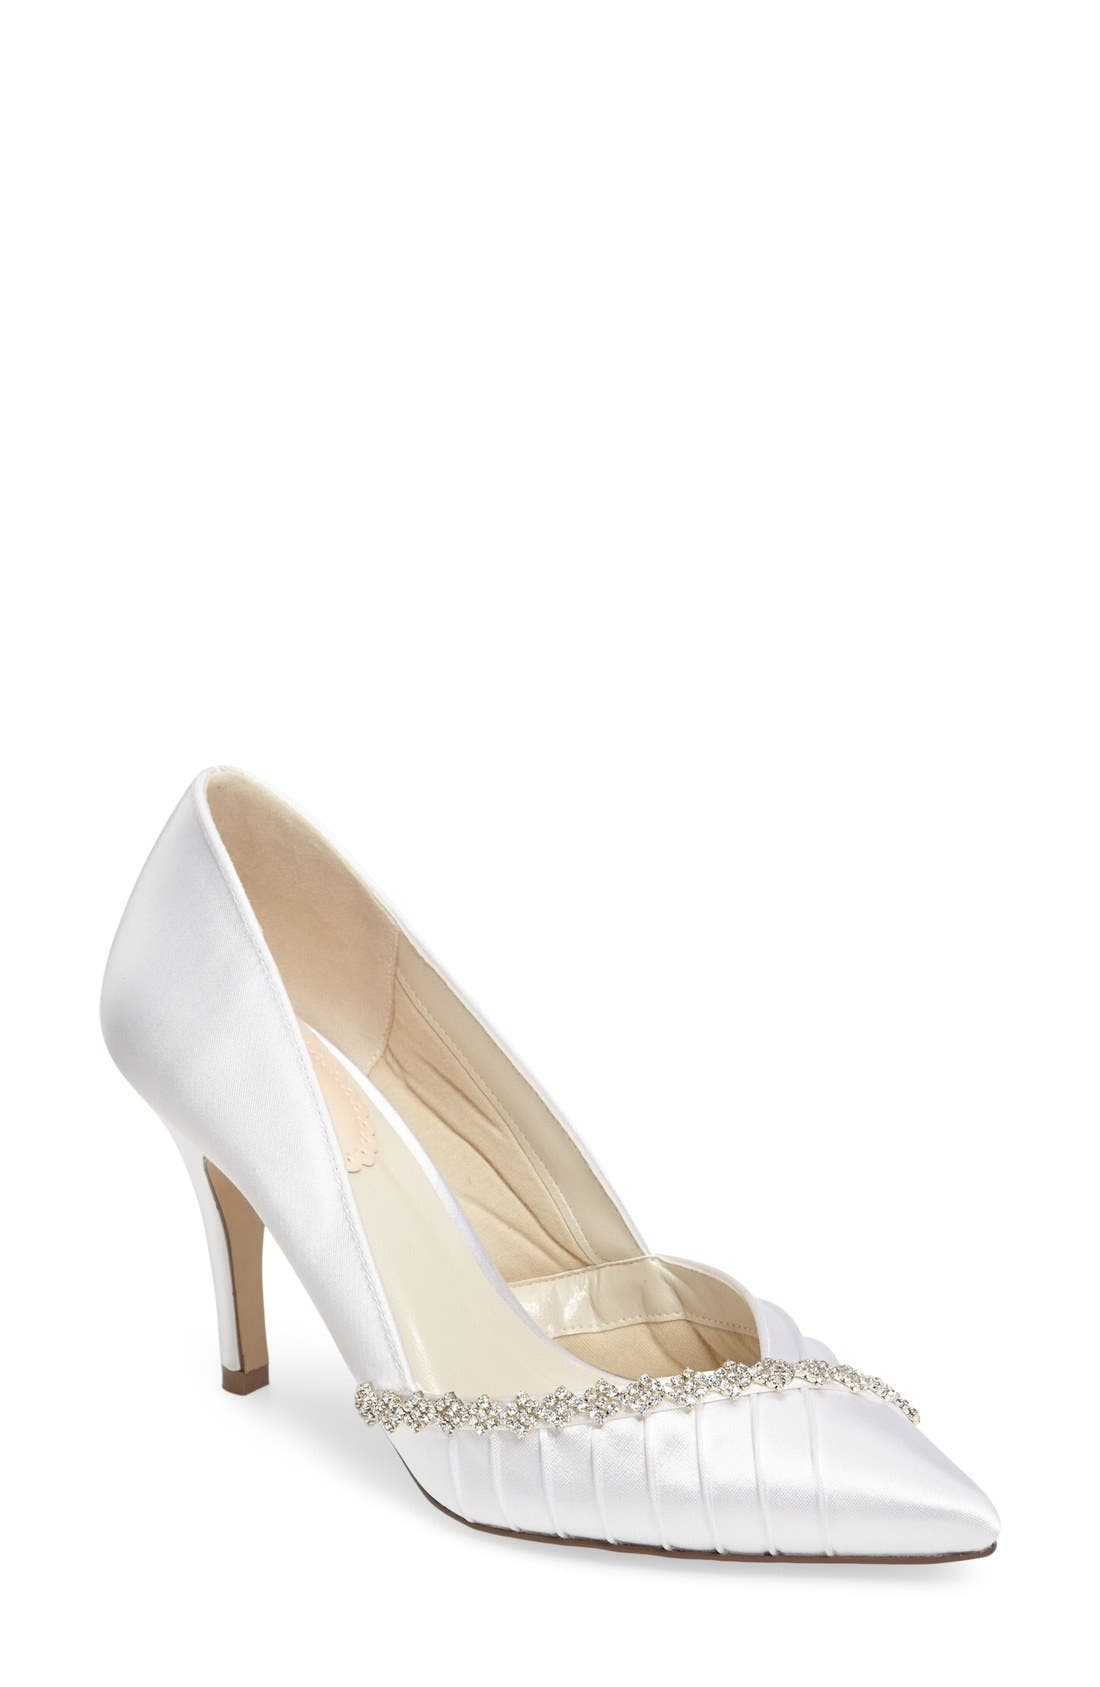 Alternate Image 1 Selected - pink paradox london Union Crystal Embellished Pointy Toe Pump (Women)